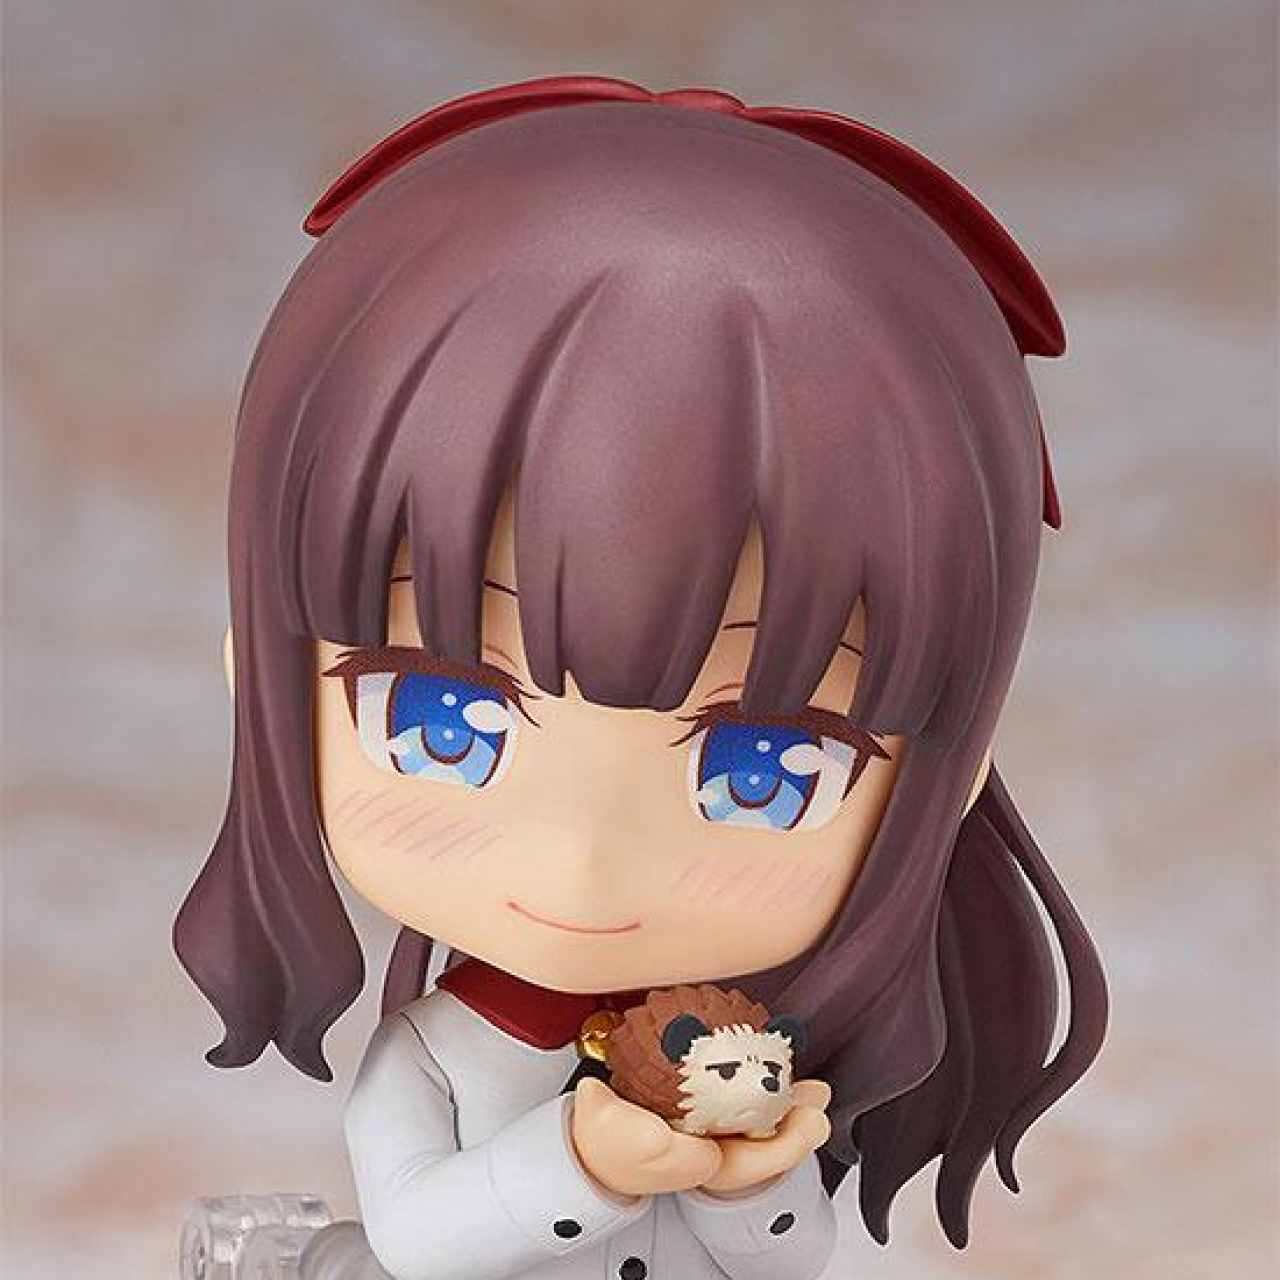 New Game!: Hifumi Takimoto (nendoroid)